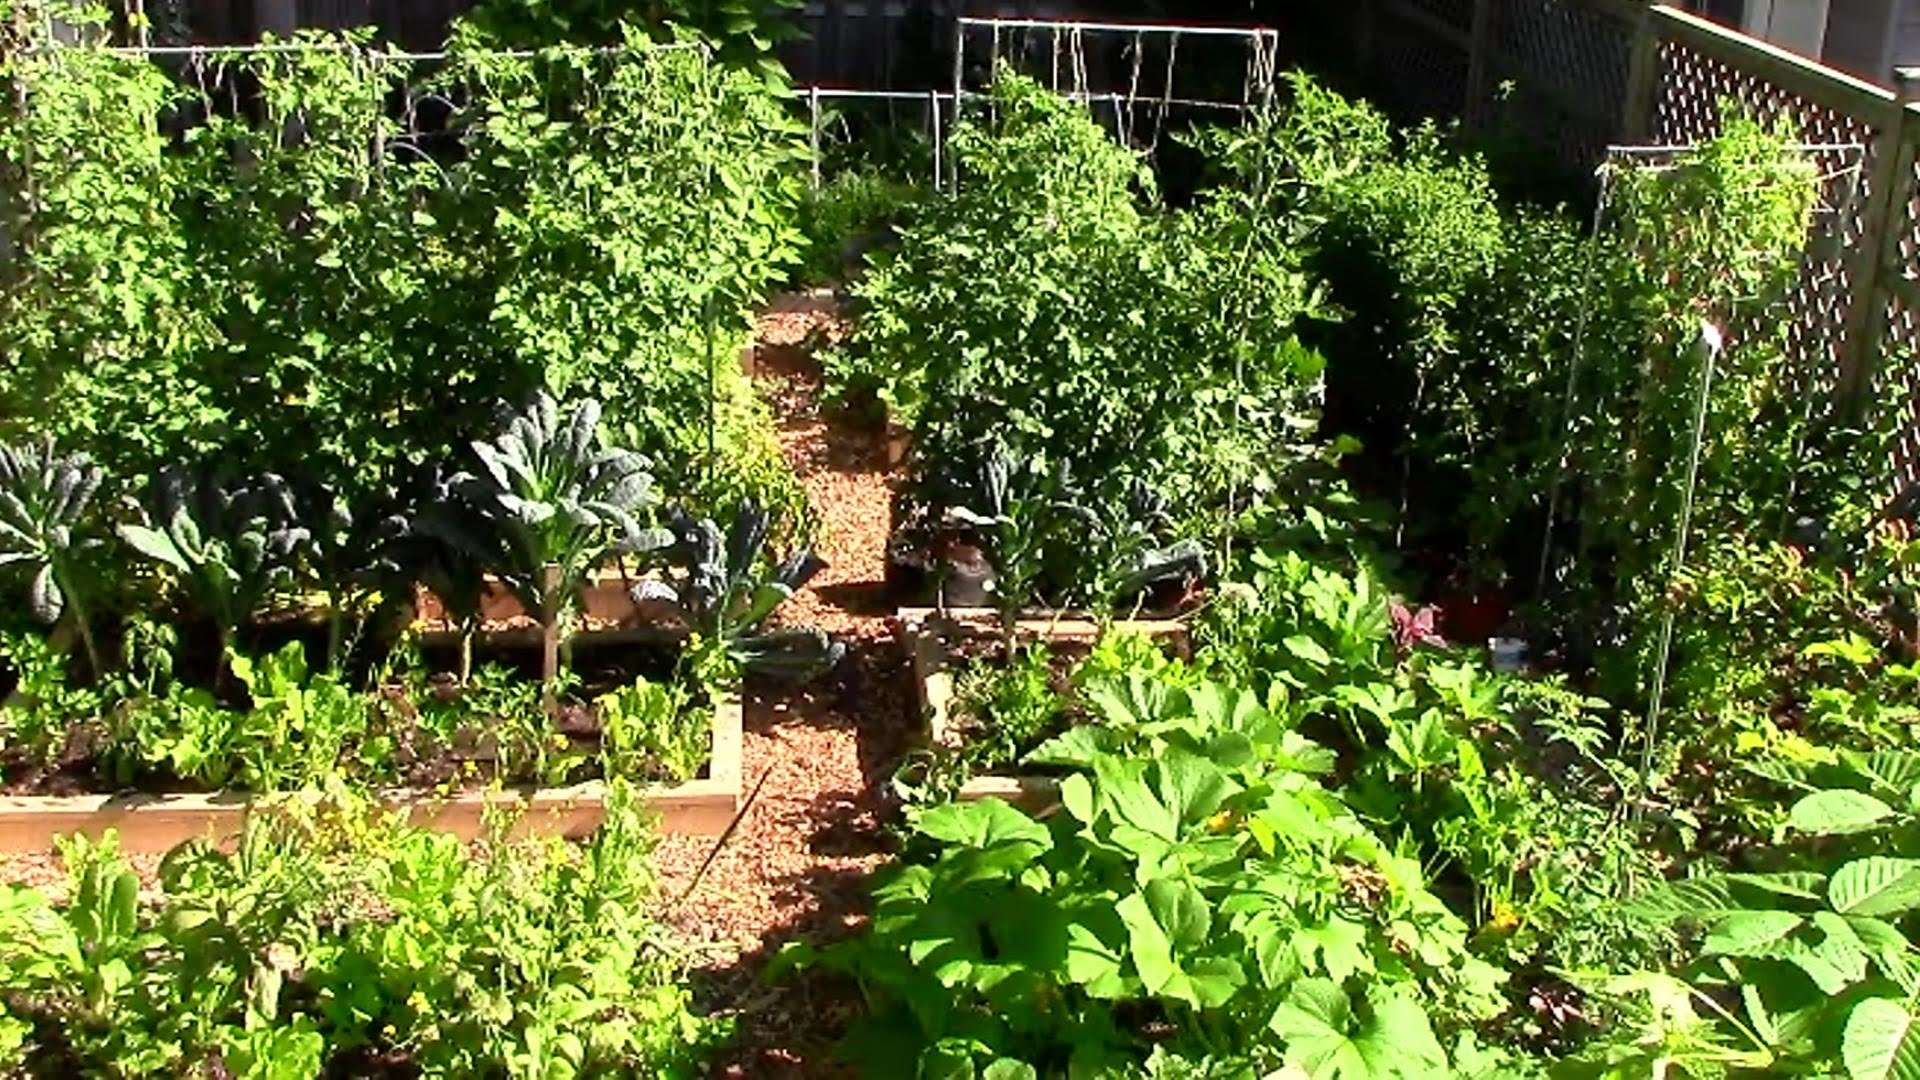 How To Grow A Lot Of Food In A Small Garden - 9 Ez Tips - Youtube within Backyard Garden To Feed Family